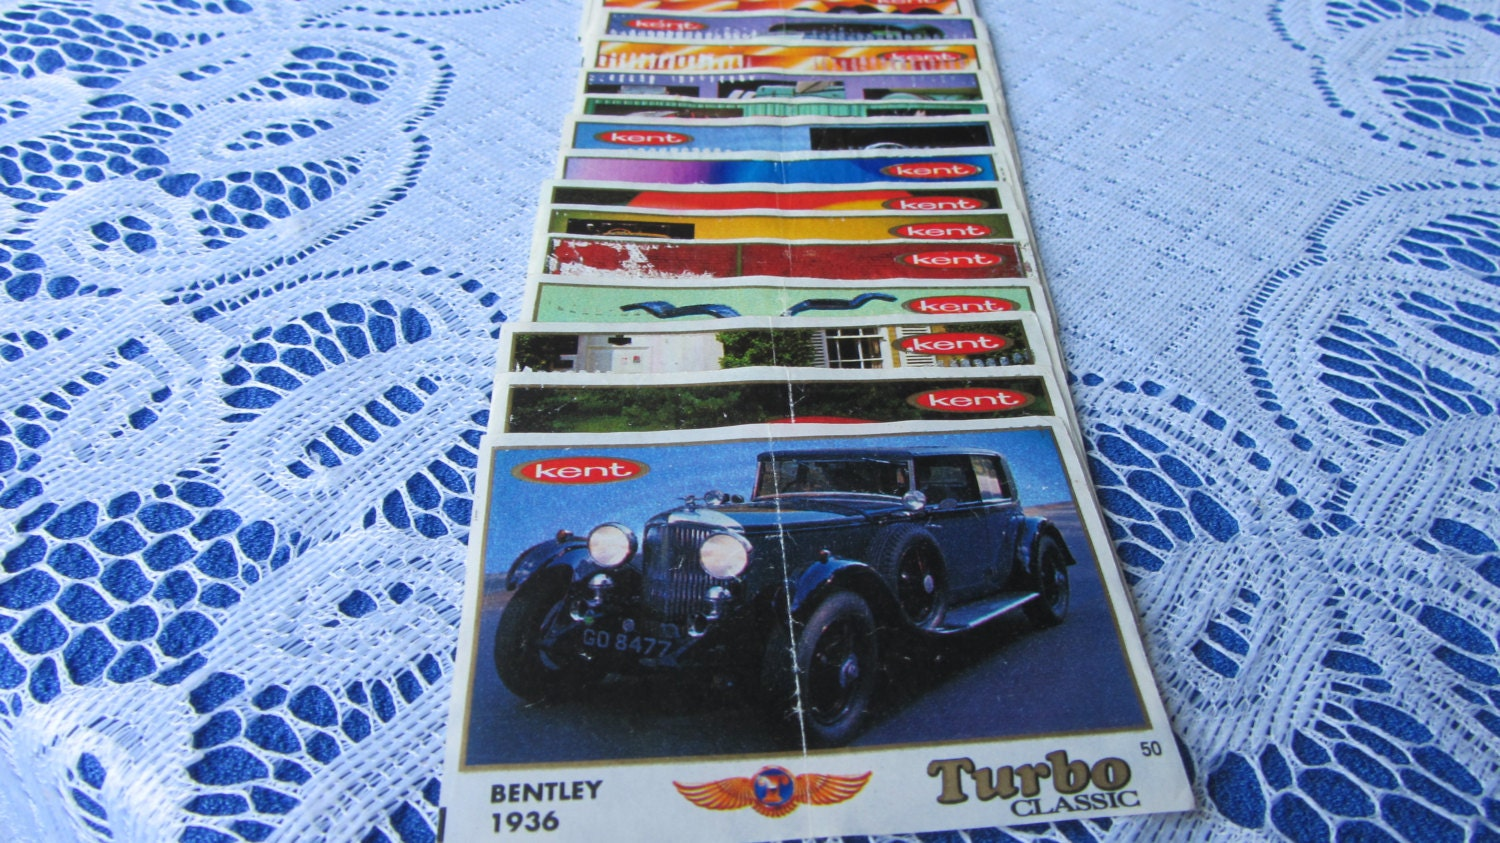 Turbo Classic 1 Edition old wrappers, Complete Turbo Classic collection, Vintage